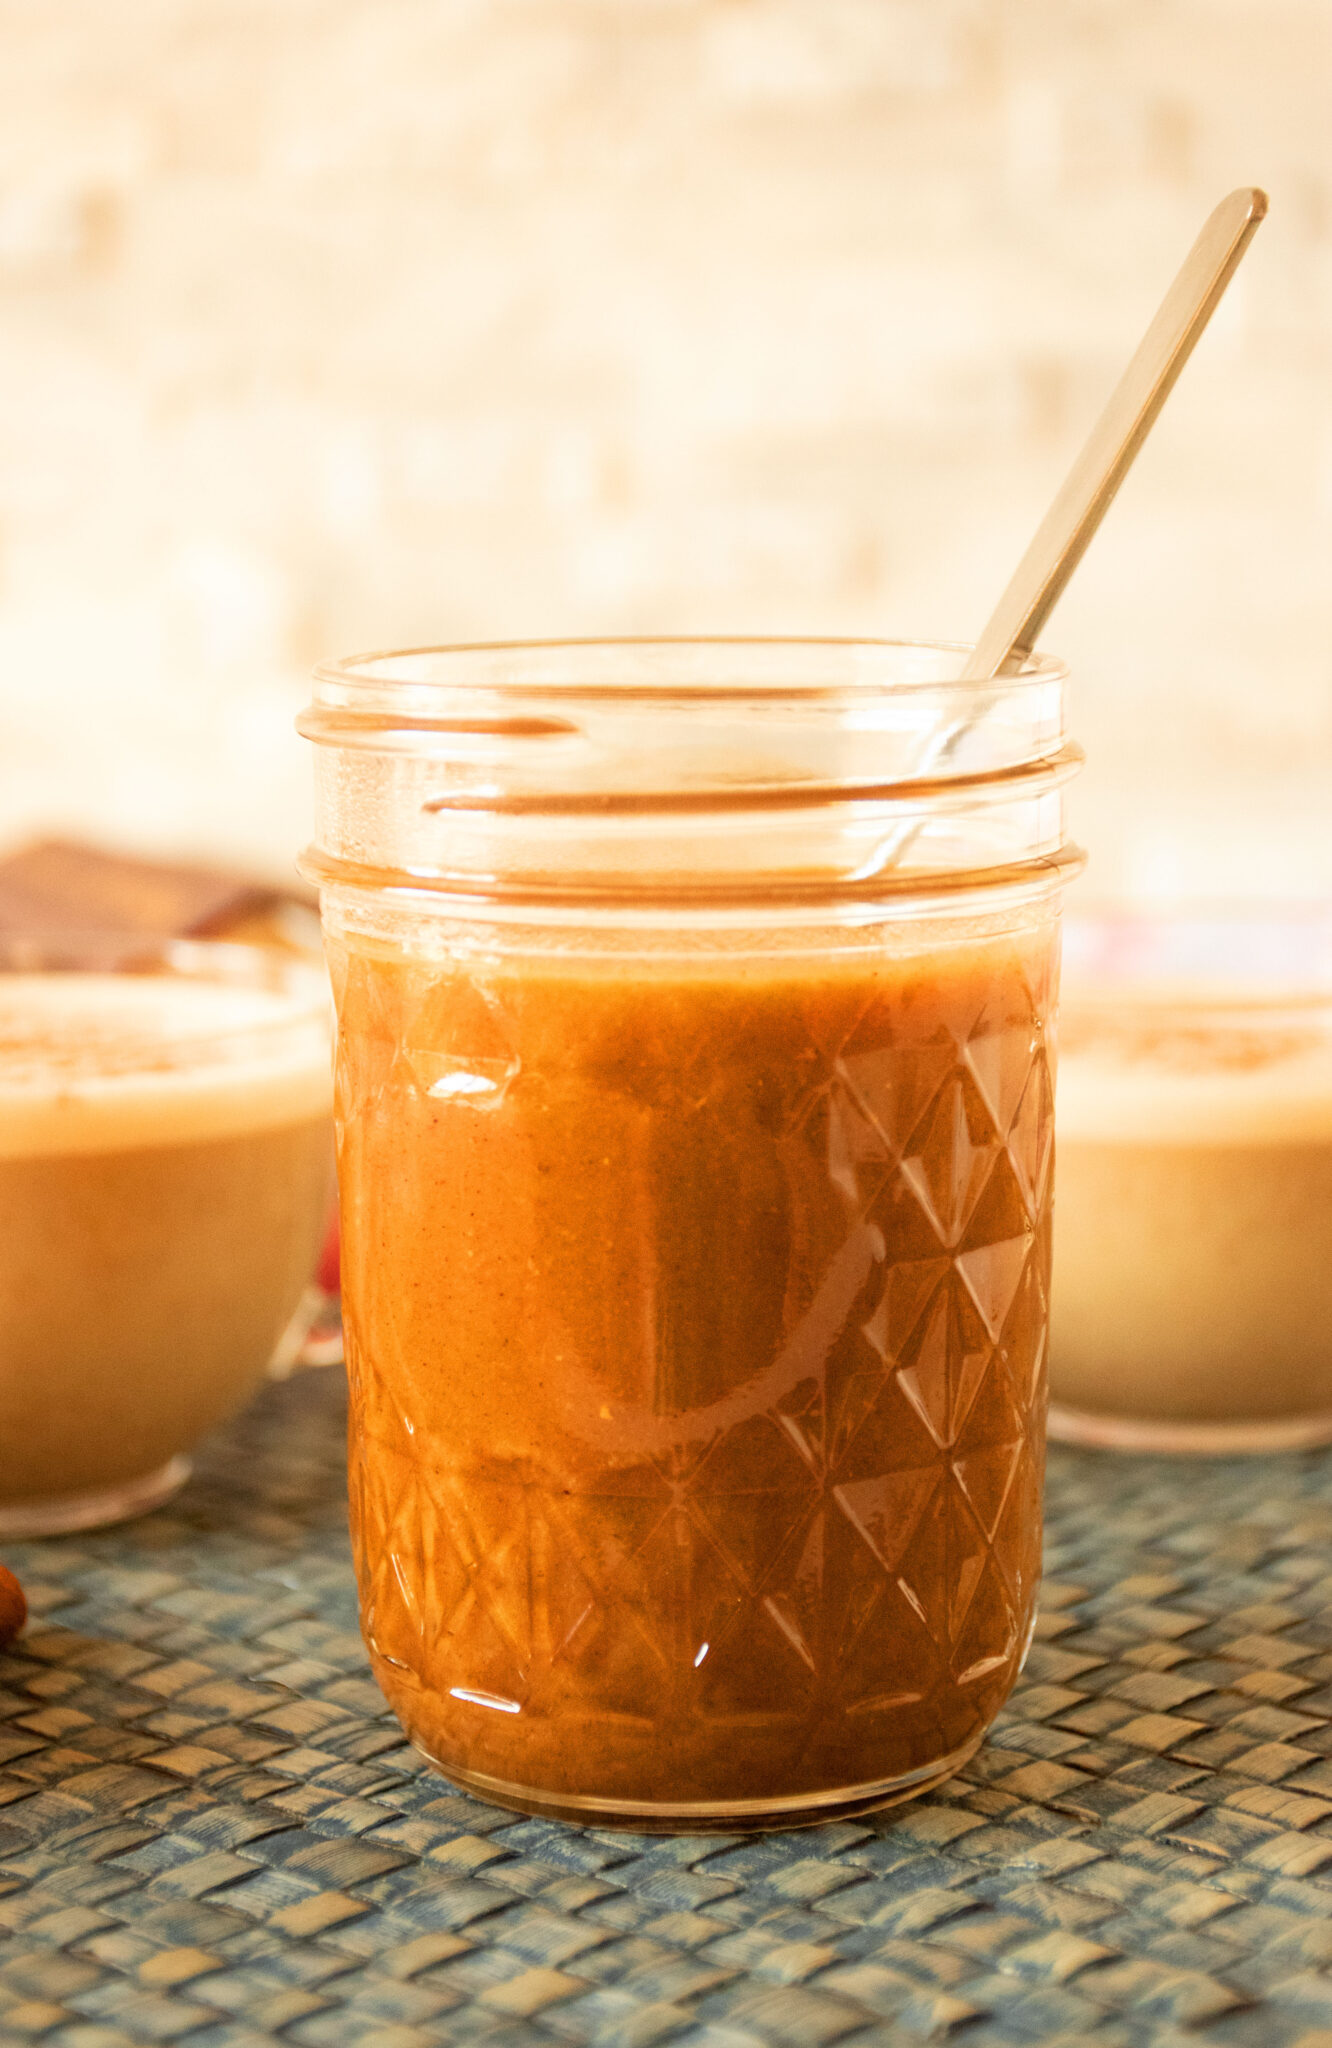 Glass jar with pumpkin spice syrup in it.